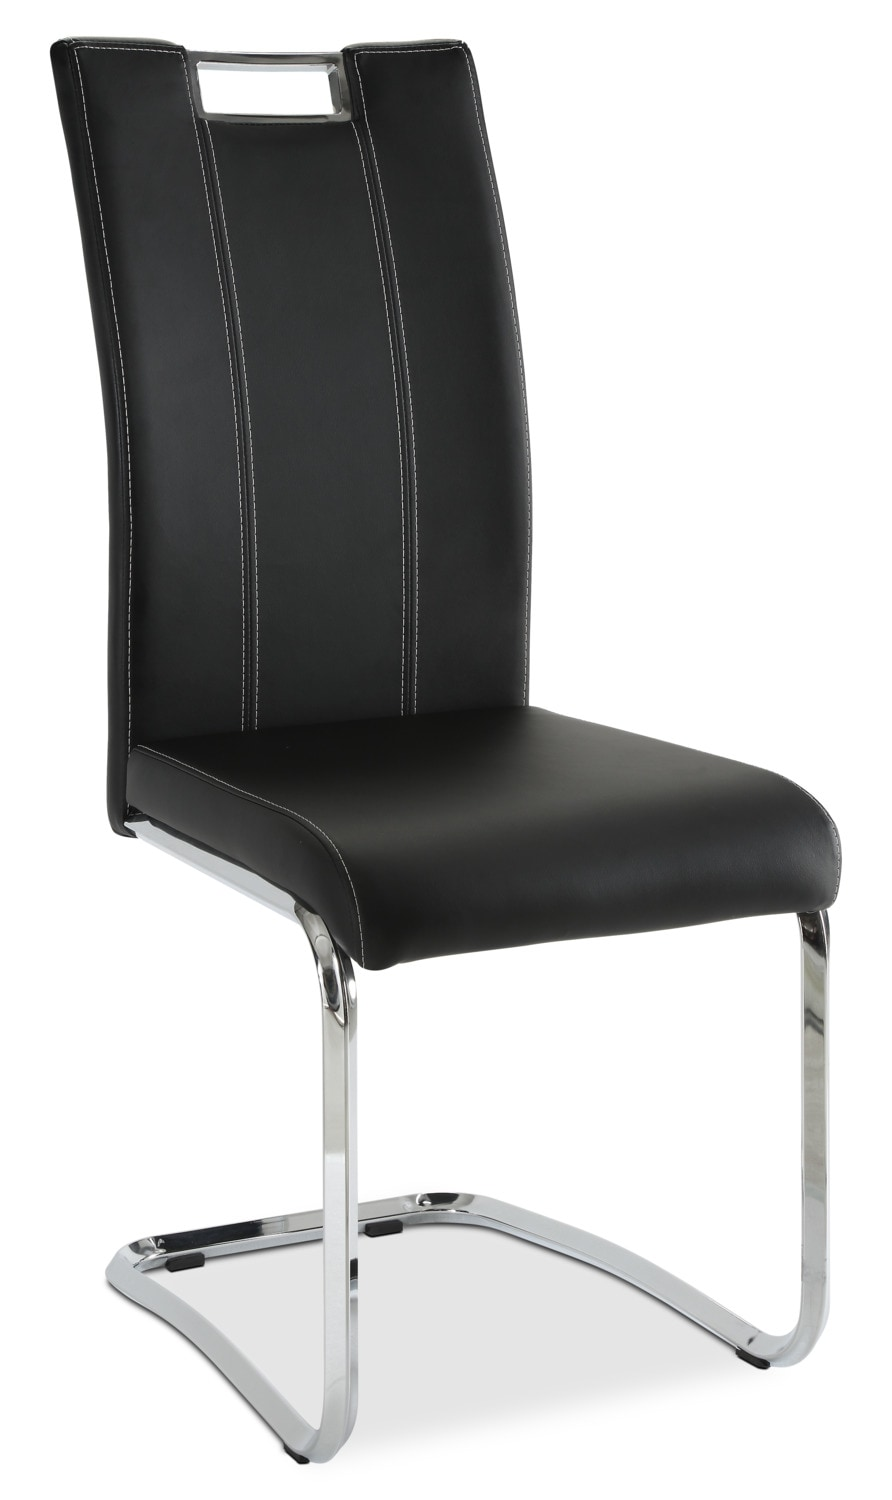 Tuxedo Dining Chair – Black